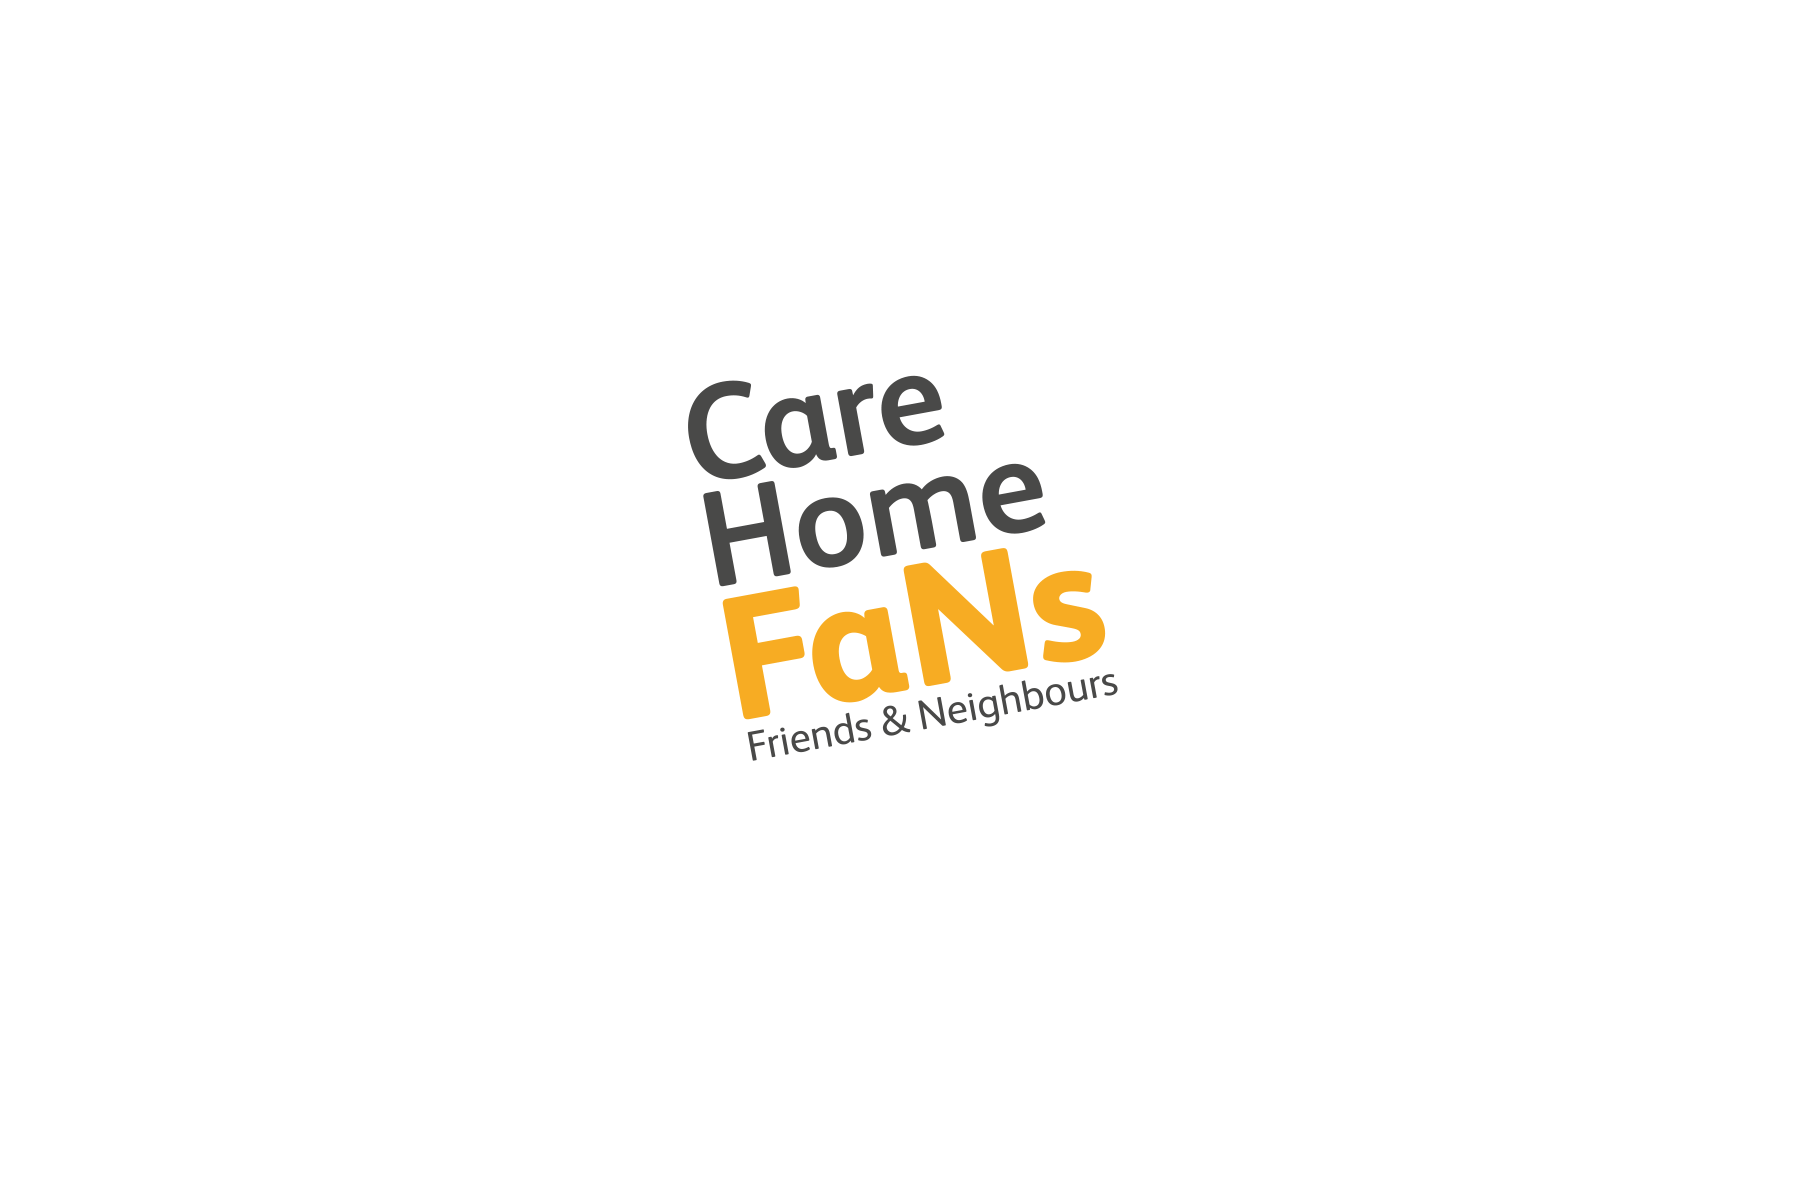 Care Home FaNs – Bringing Communities into Care Settings